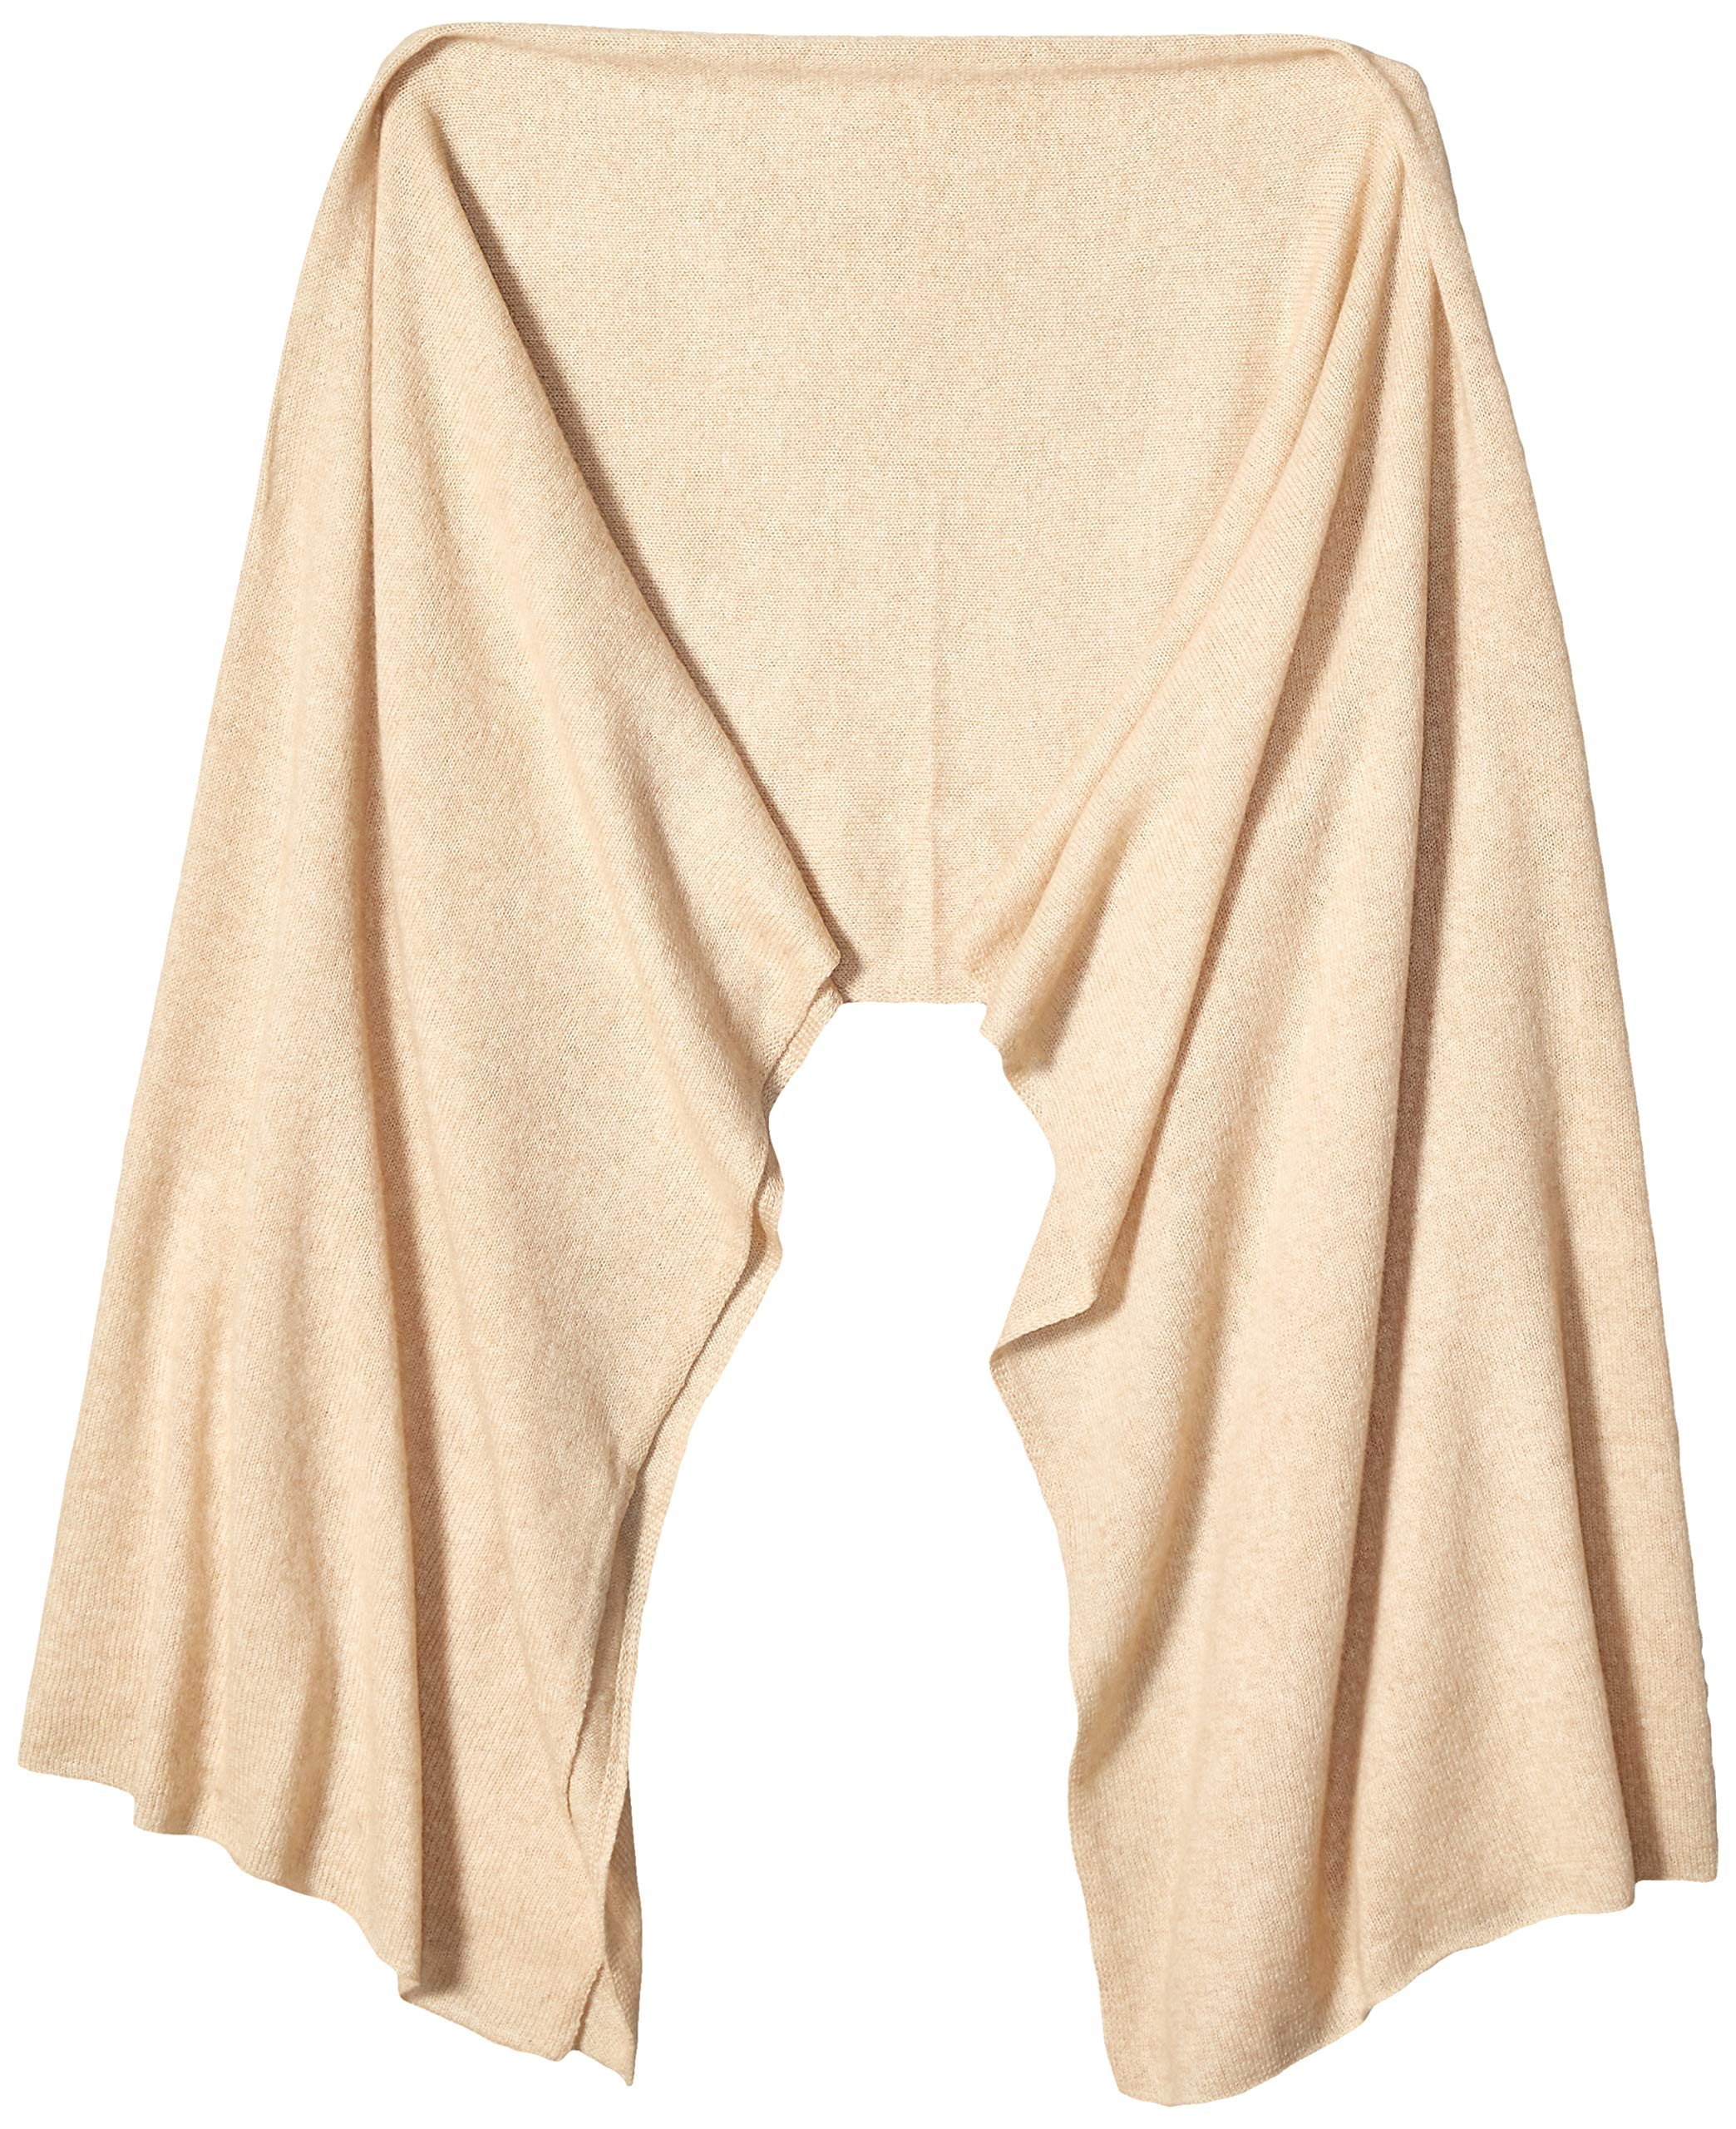 Jet&Bo 100% Pure Cashmere Lightweight Travel Wrap & Scarf Beige 7GG by Jet&Bo (Image #3)